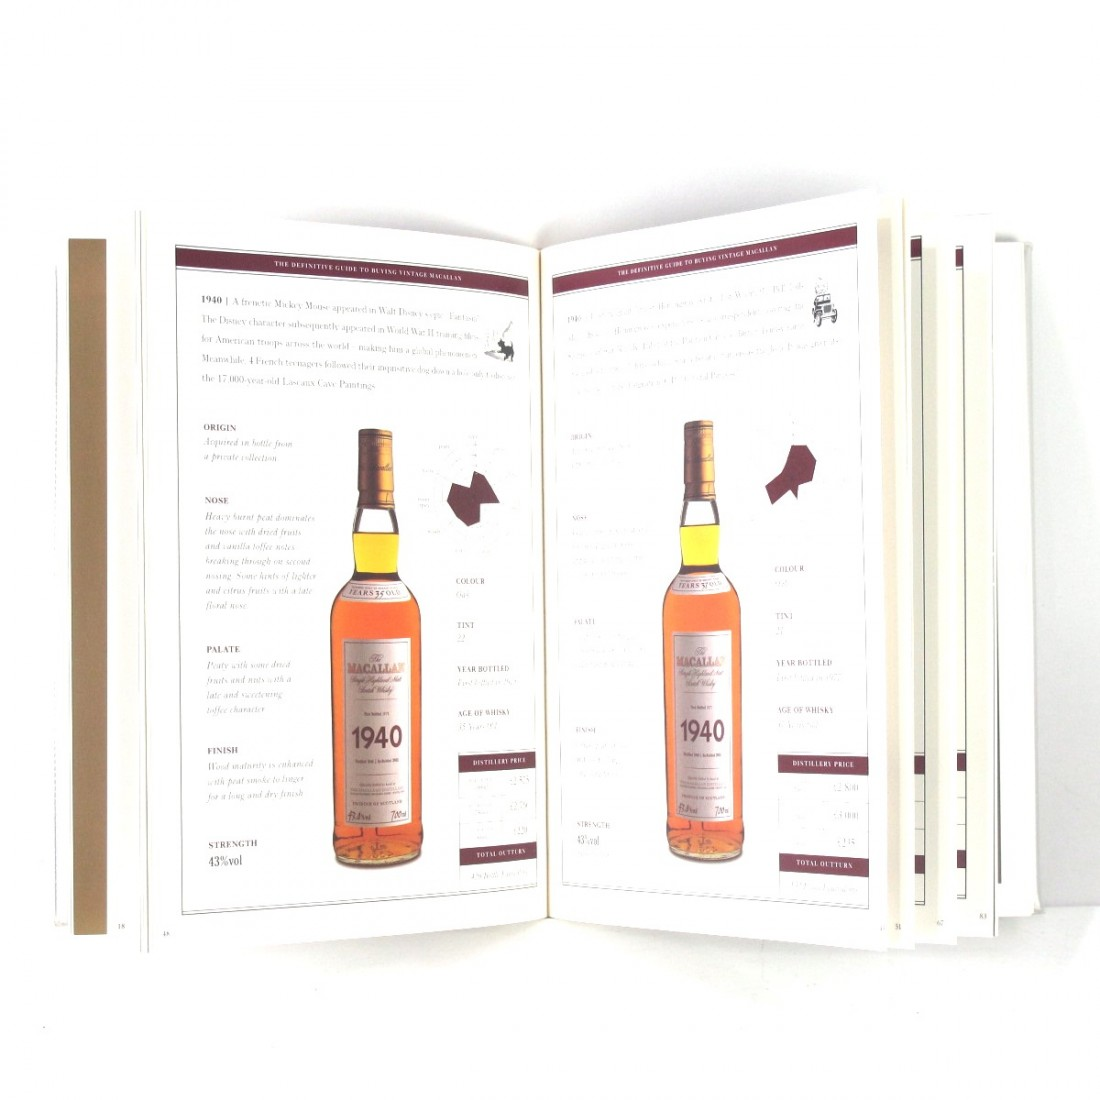 The Definitive Guide to Buying Vintage Macallan First Edition